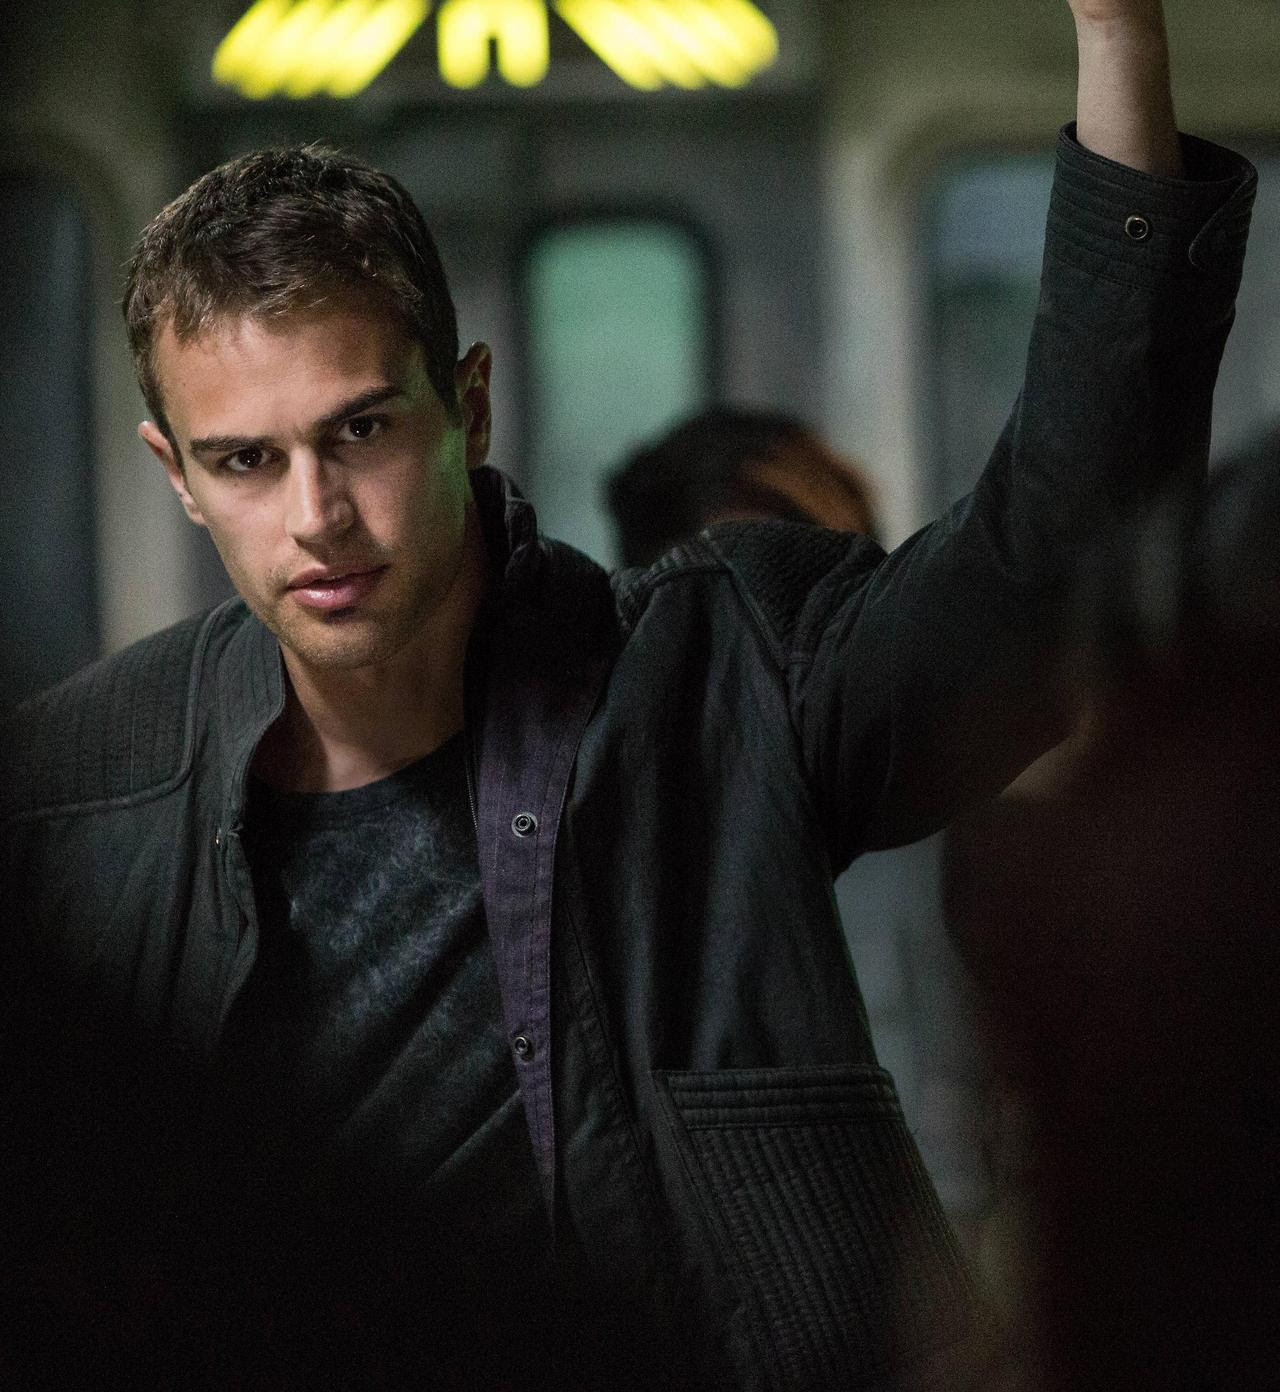 http://fandomnetnews.files.wordpress.com/2014/03/divergentstill20.jpg